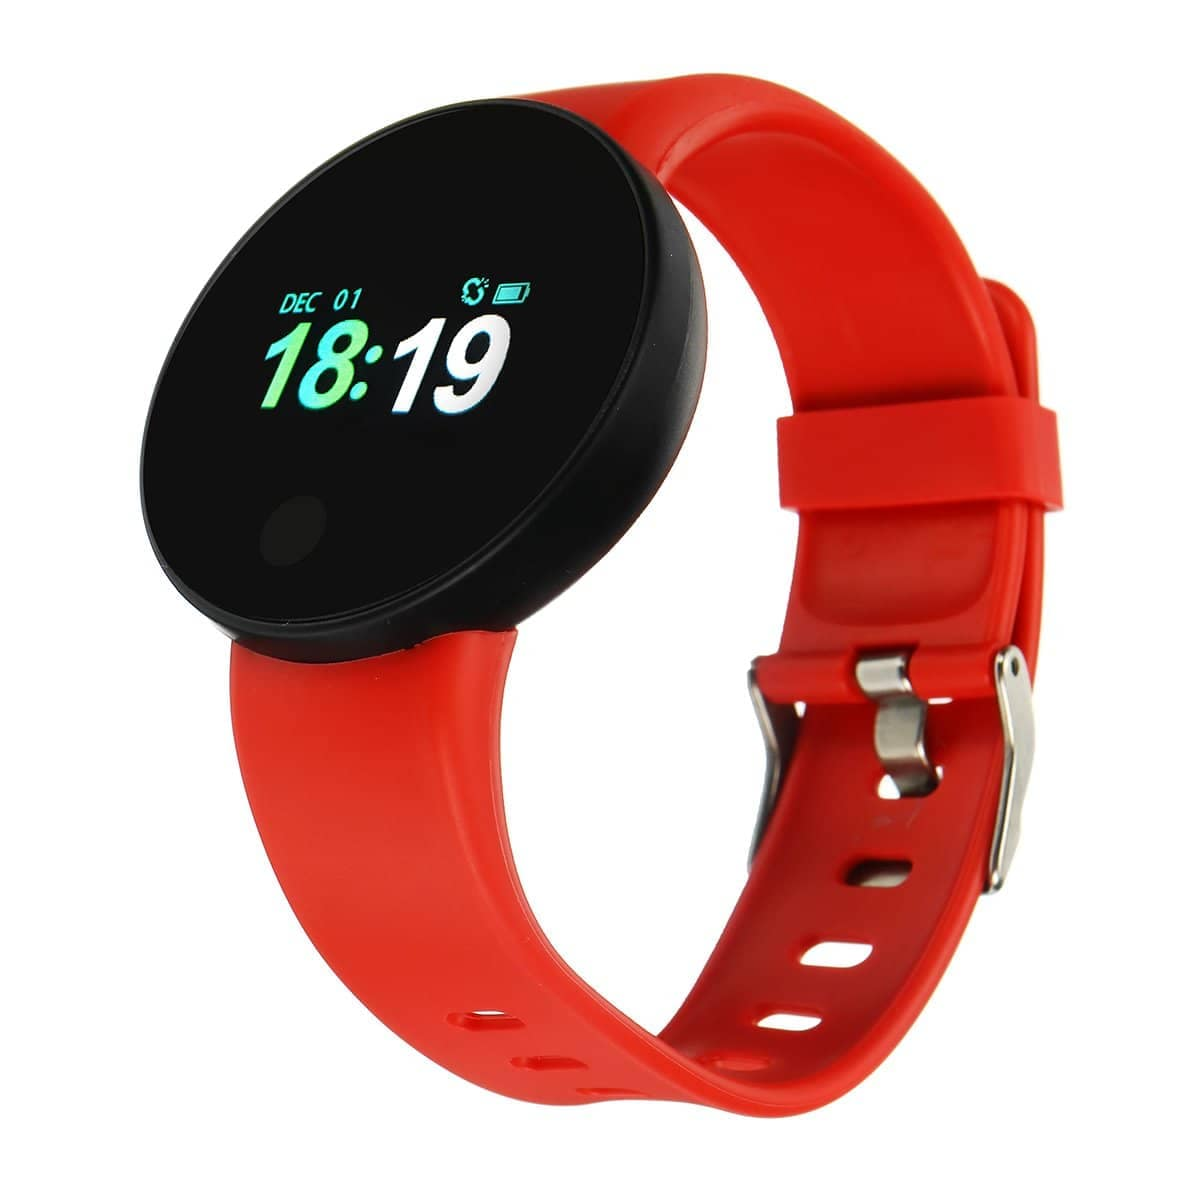 Bakeey Dynamic Heart Rate Blood Pressure Sleep Monitor Fitness Tracker SMS Reminder USB Chargin... Mybigfatstore